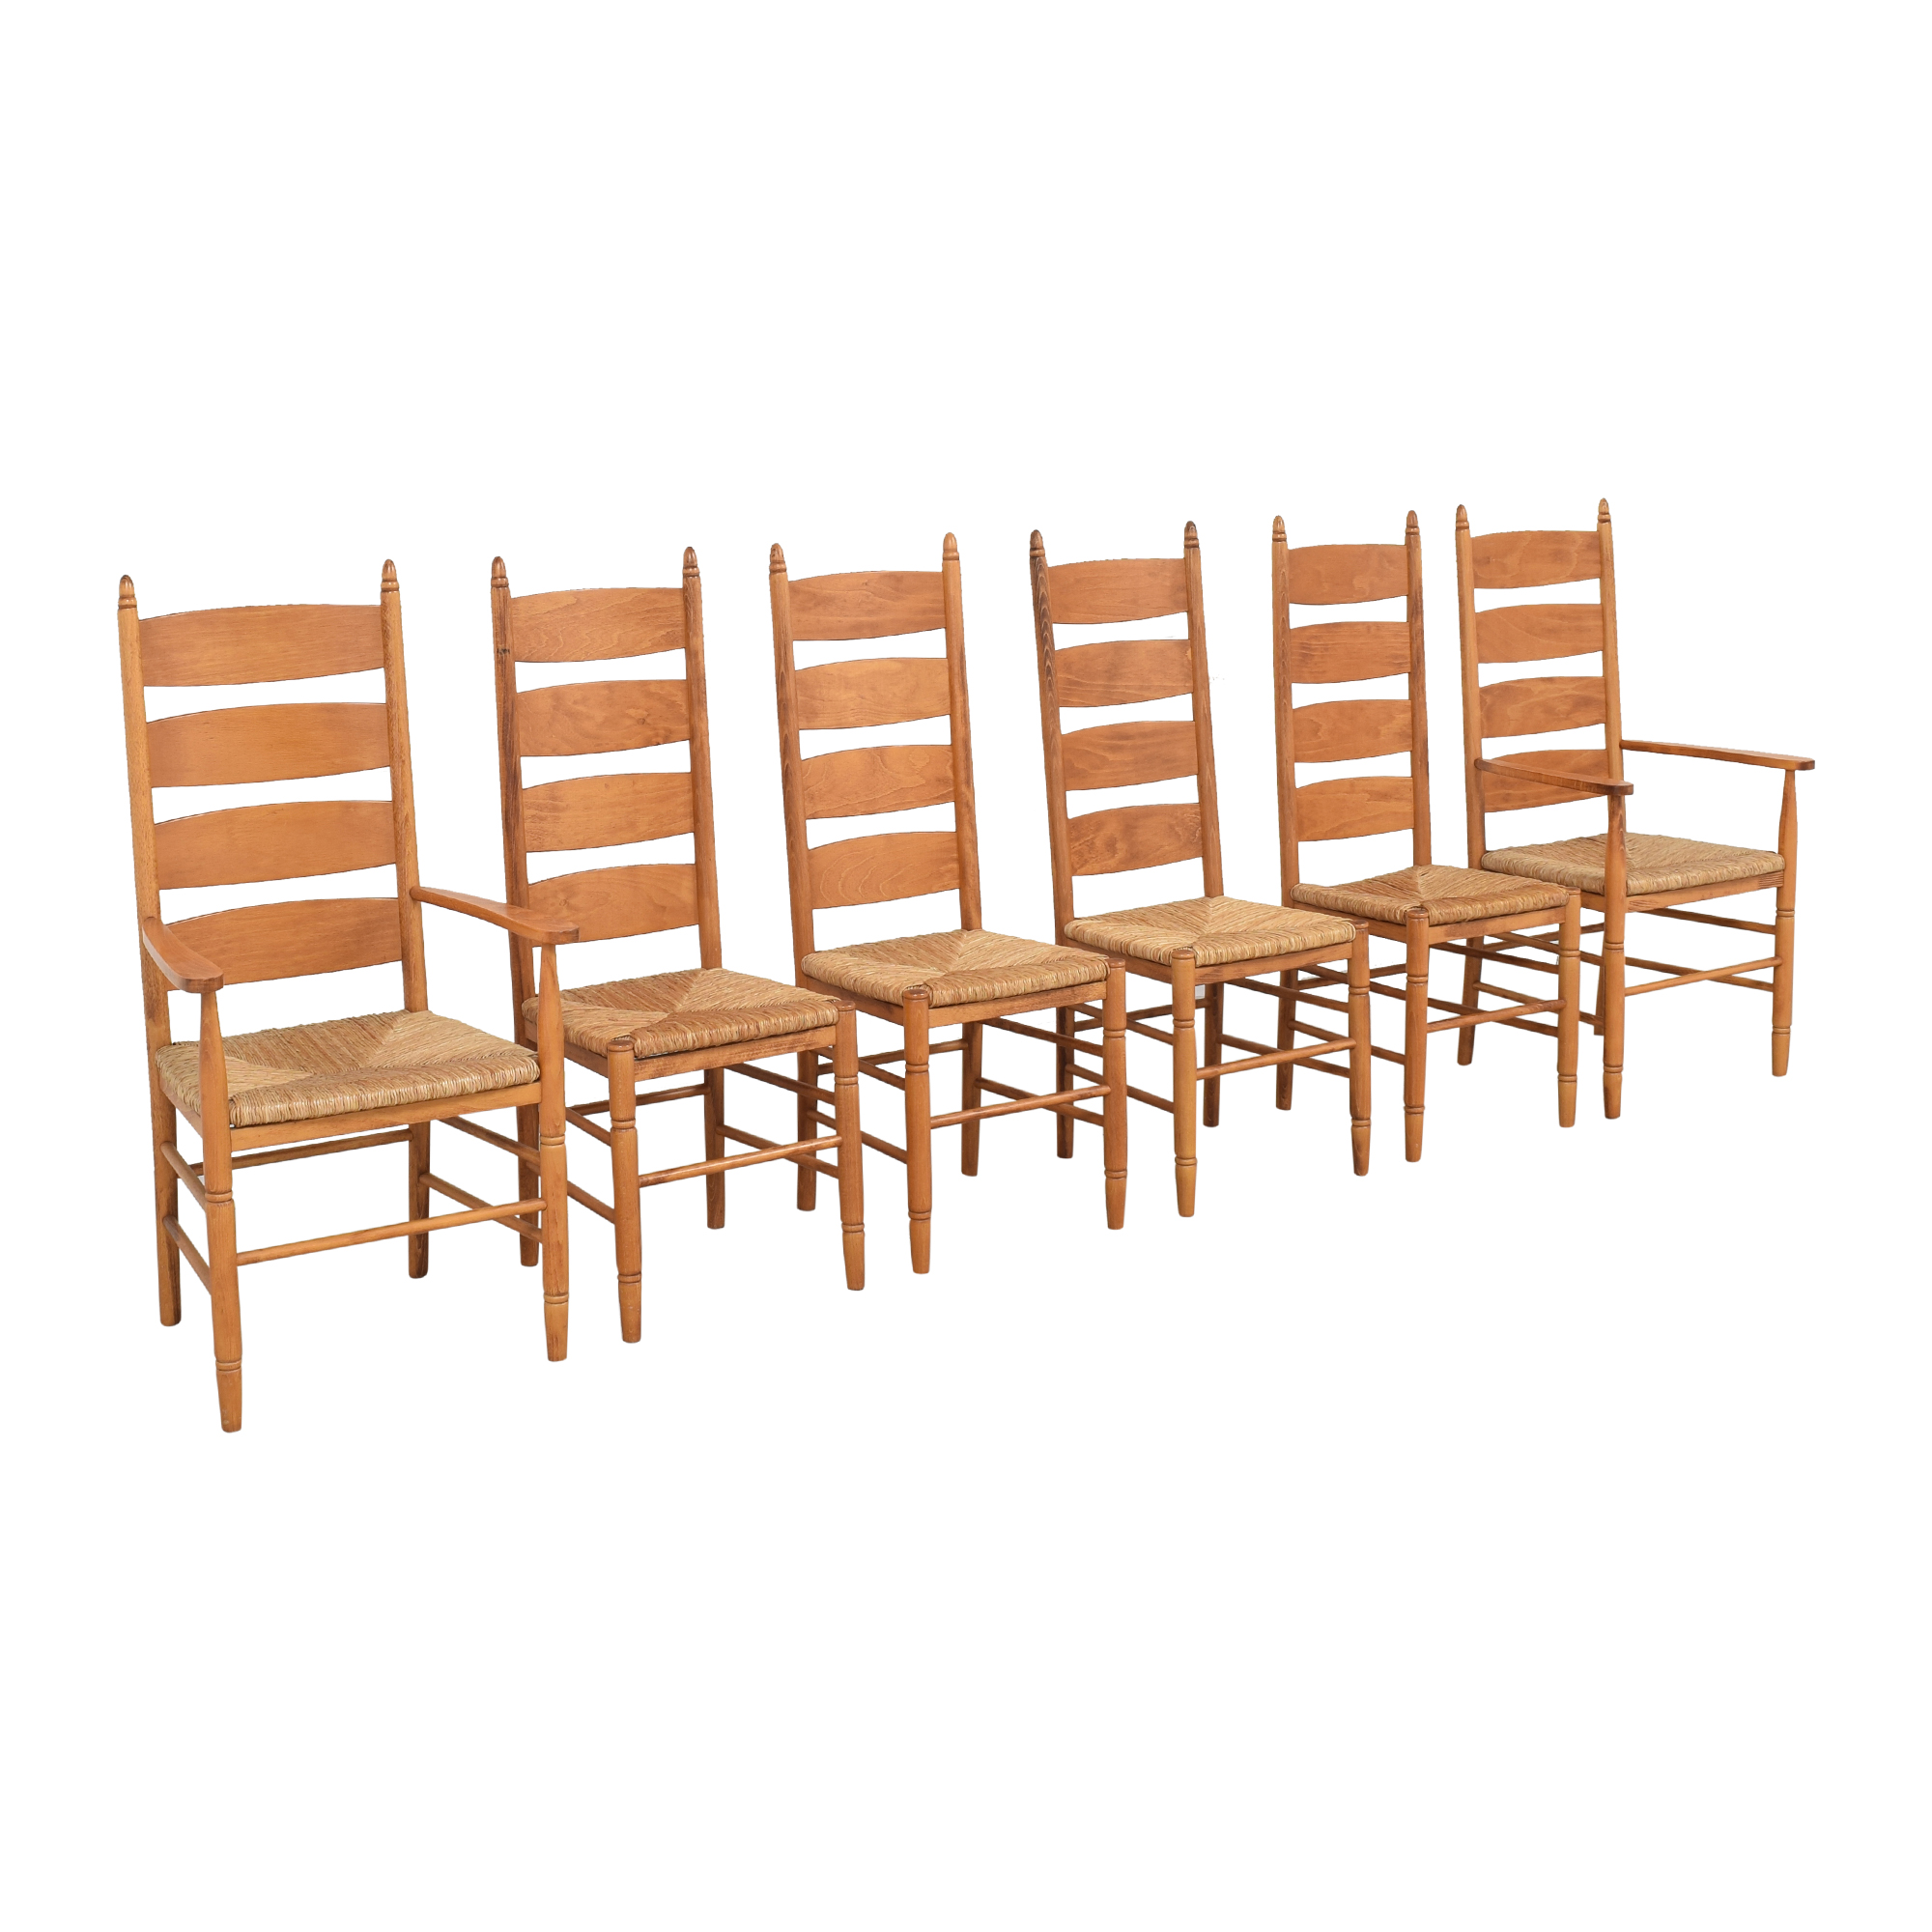 Pottery Barn Pottery Barn Ladder Back Dining Chairs coupon